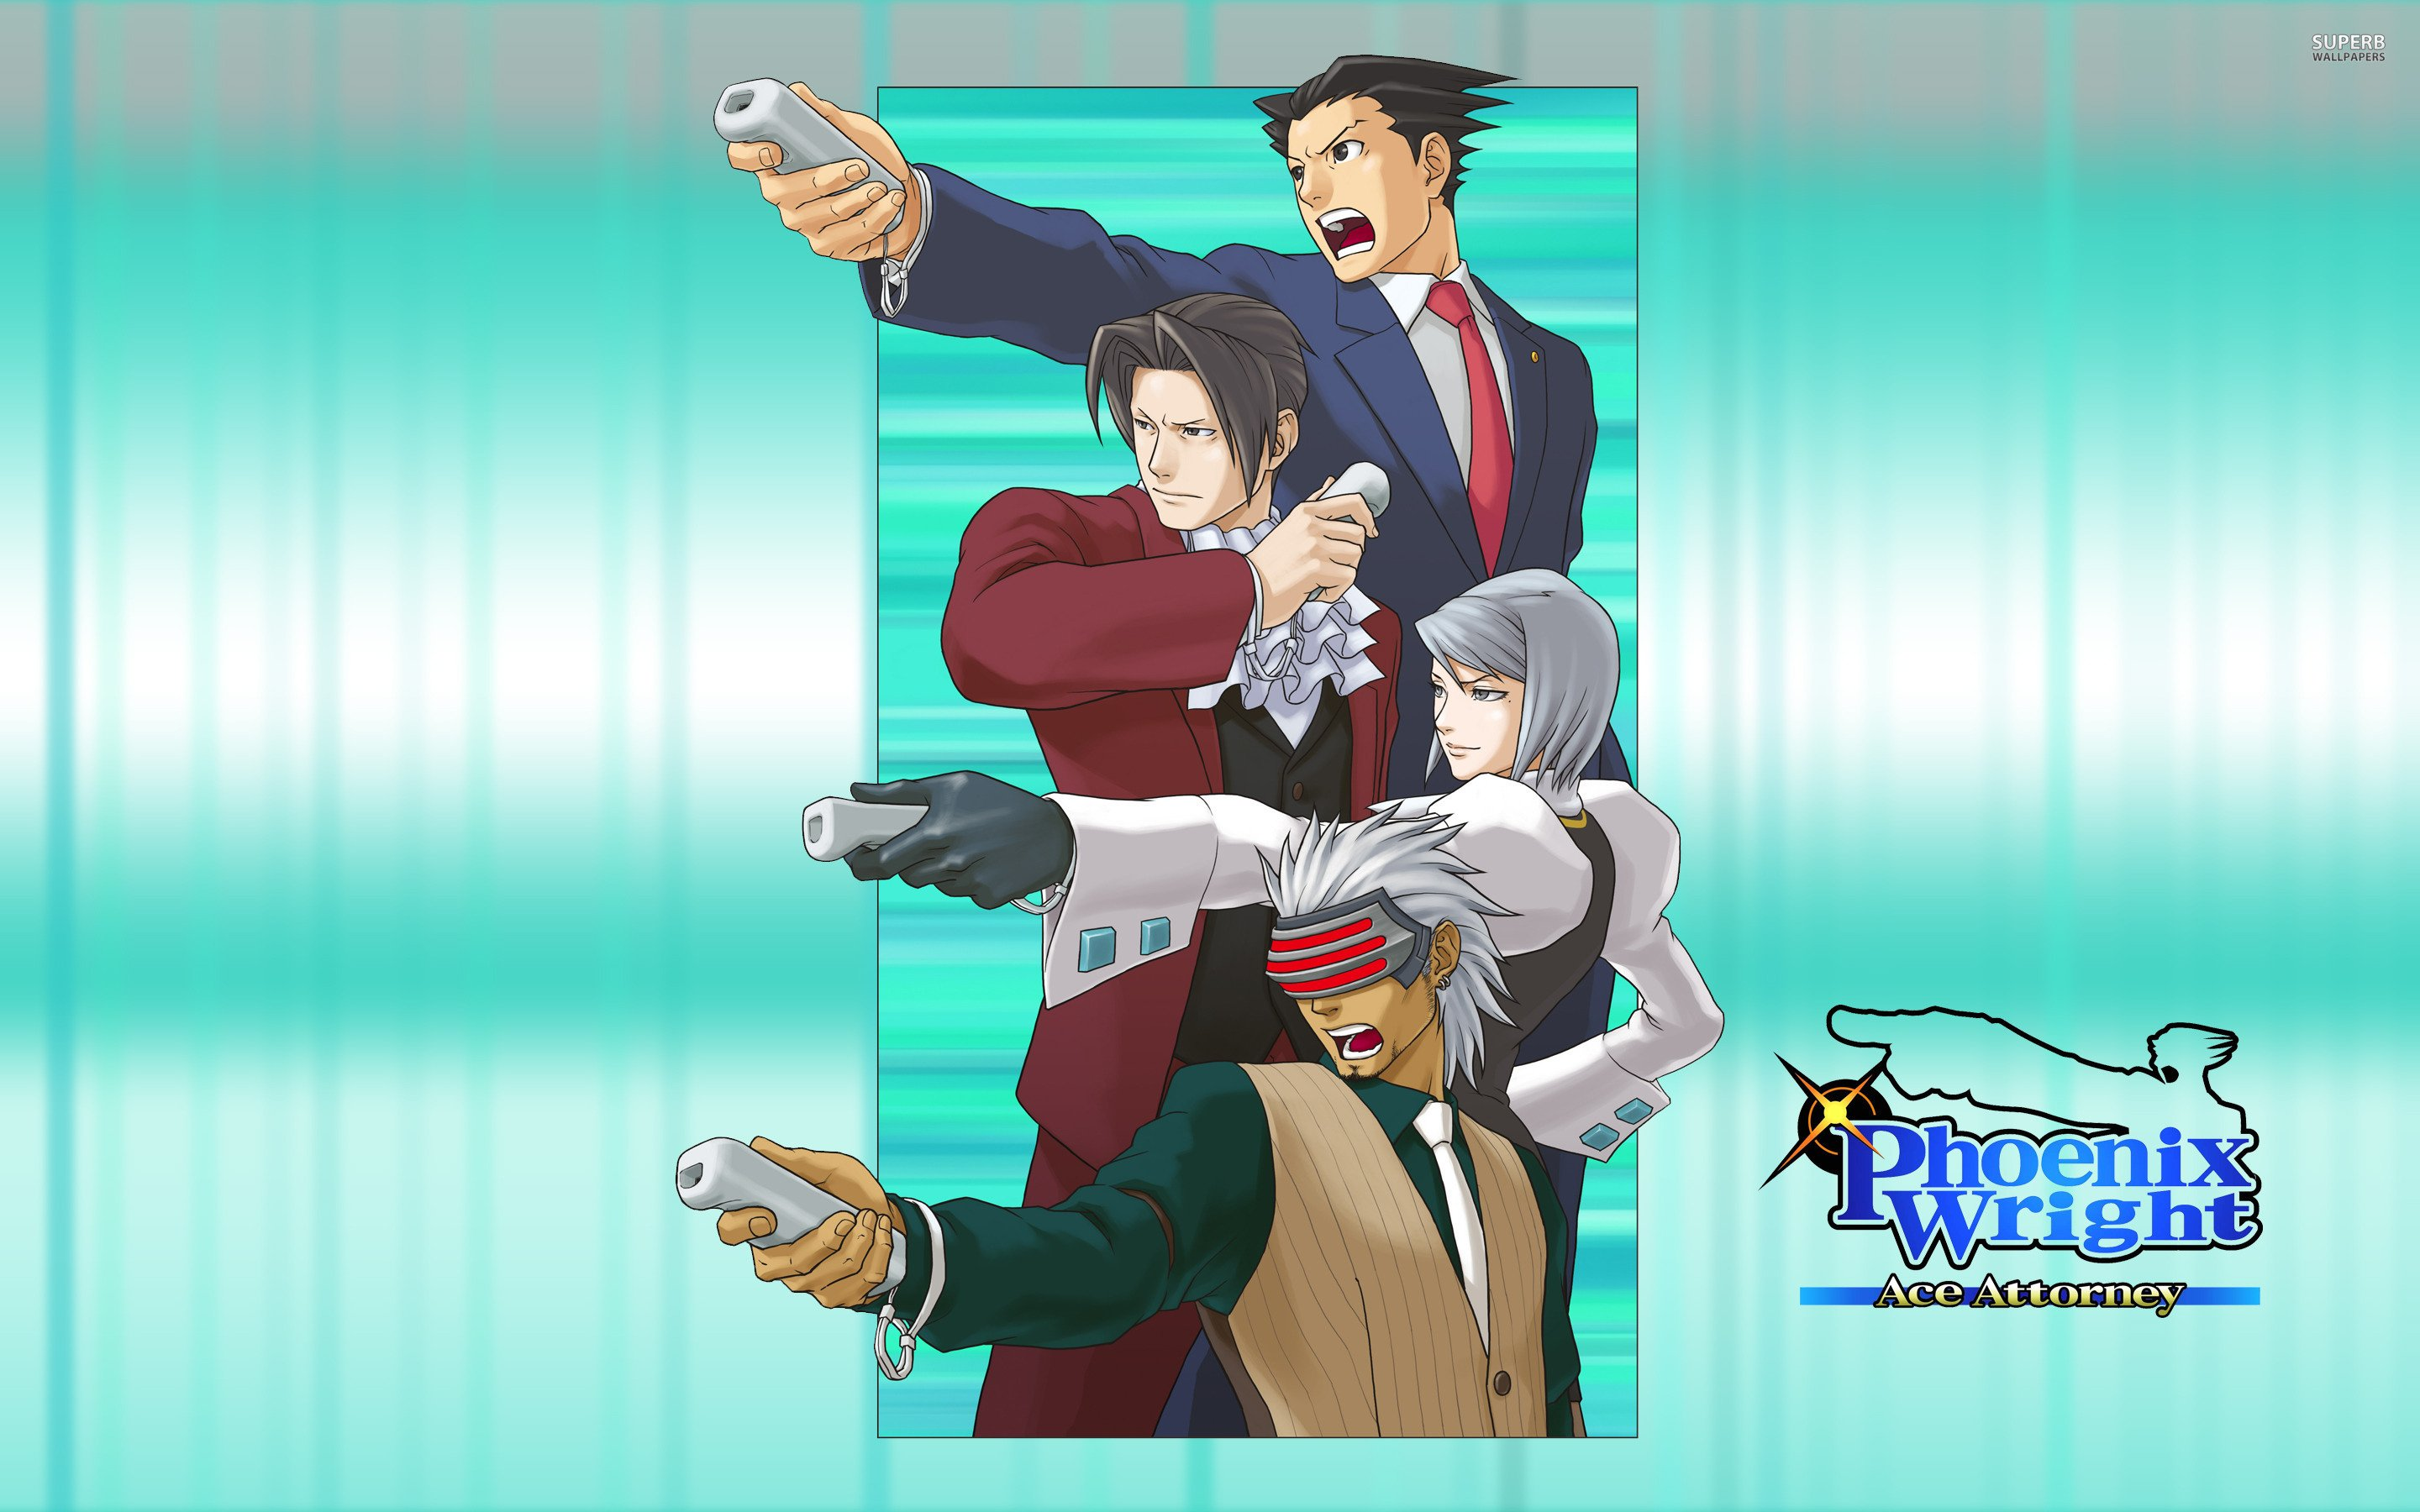 Free Download Phoenix Wright Ace Attorney Hd Wallpapers And